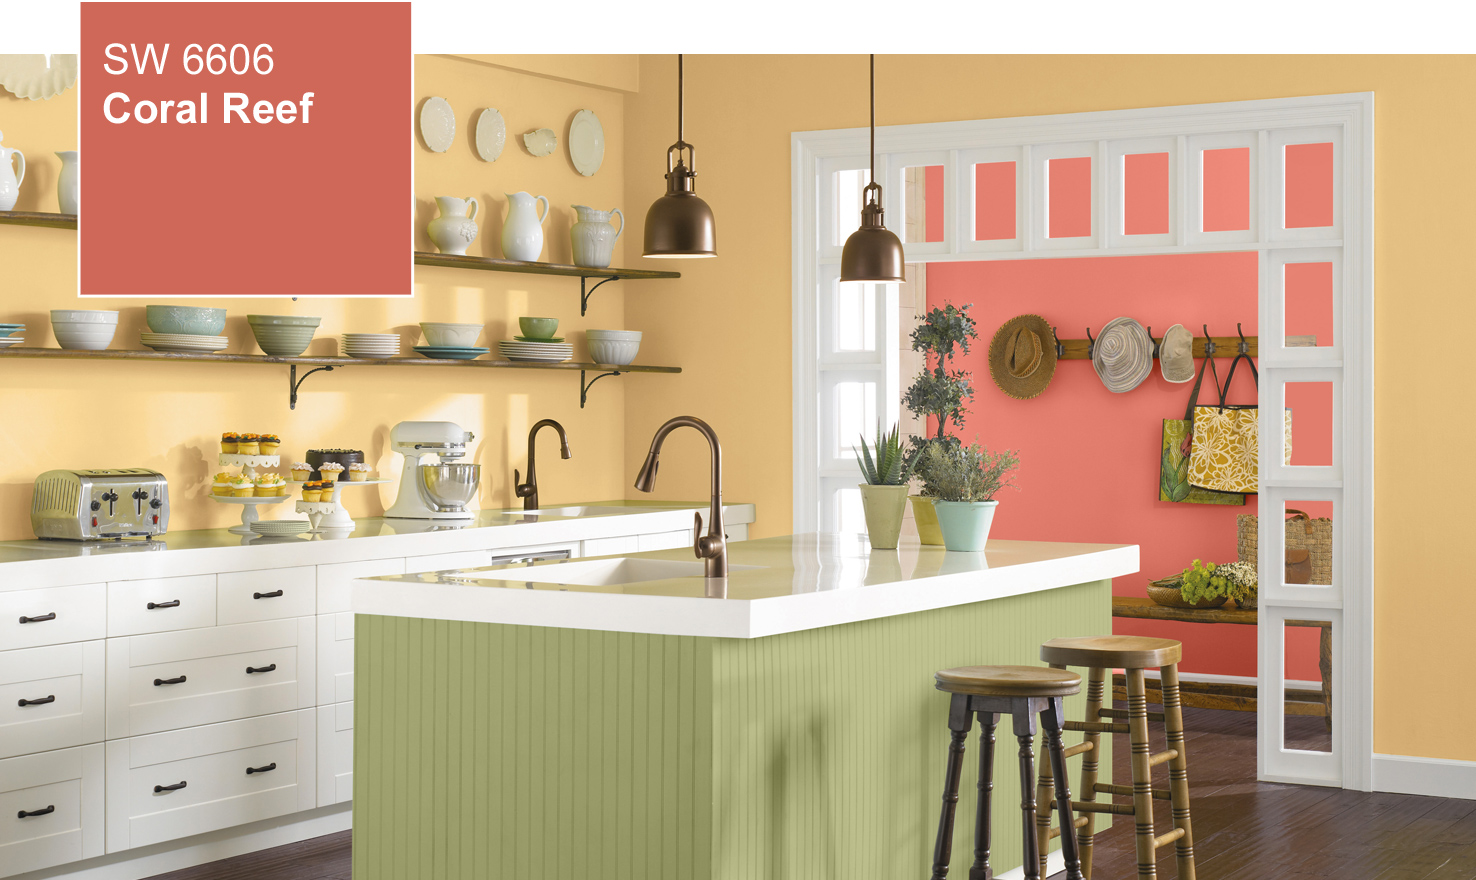 sherwin williams interior paint color matching app colorsnappaint sherwin williams paint - Sherwin Williams Color Matching